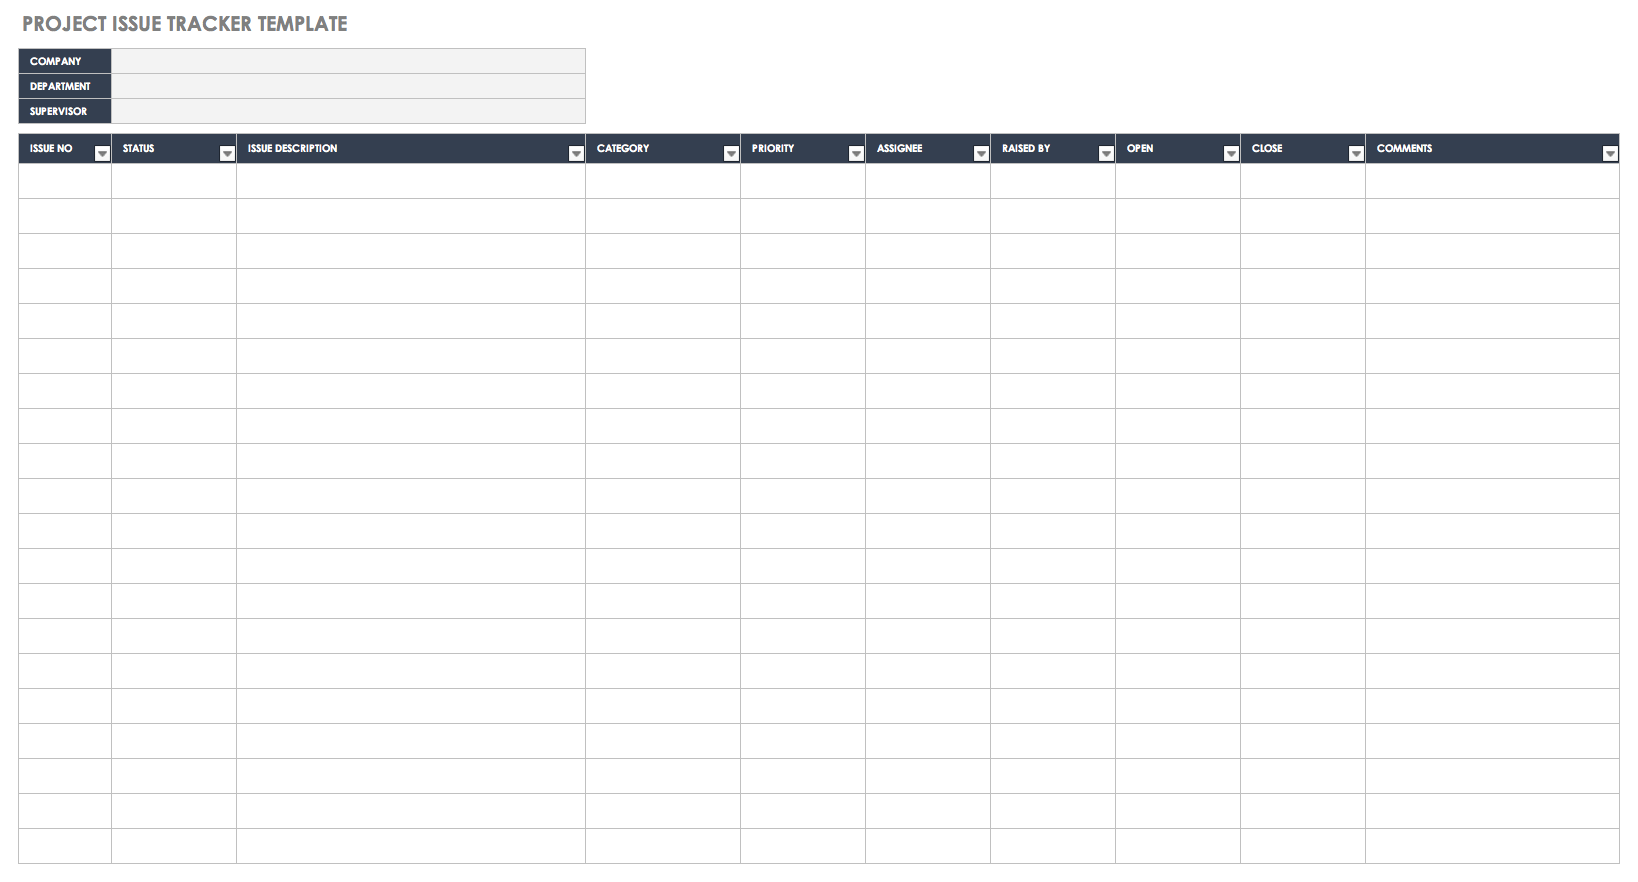 Full Size of South Australia Form 7000 Standard Business 3 Up Template Frd For Issue Tracker